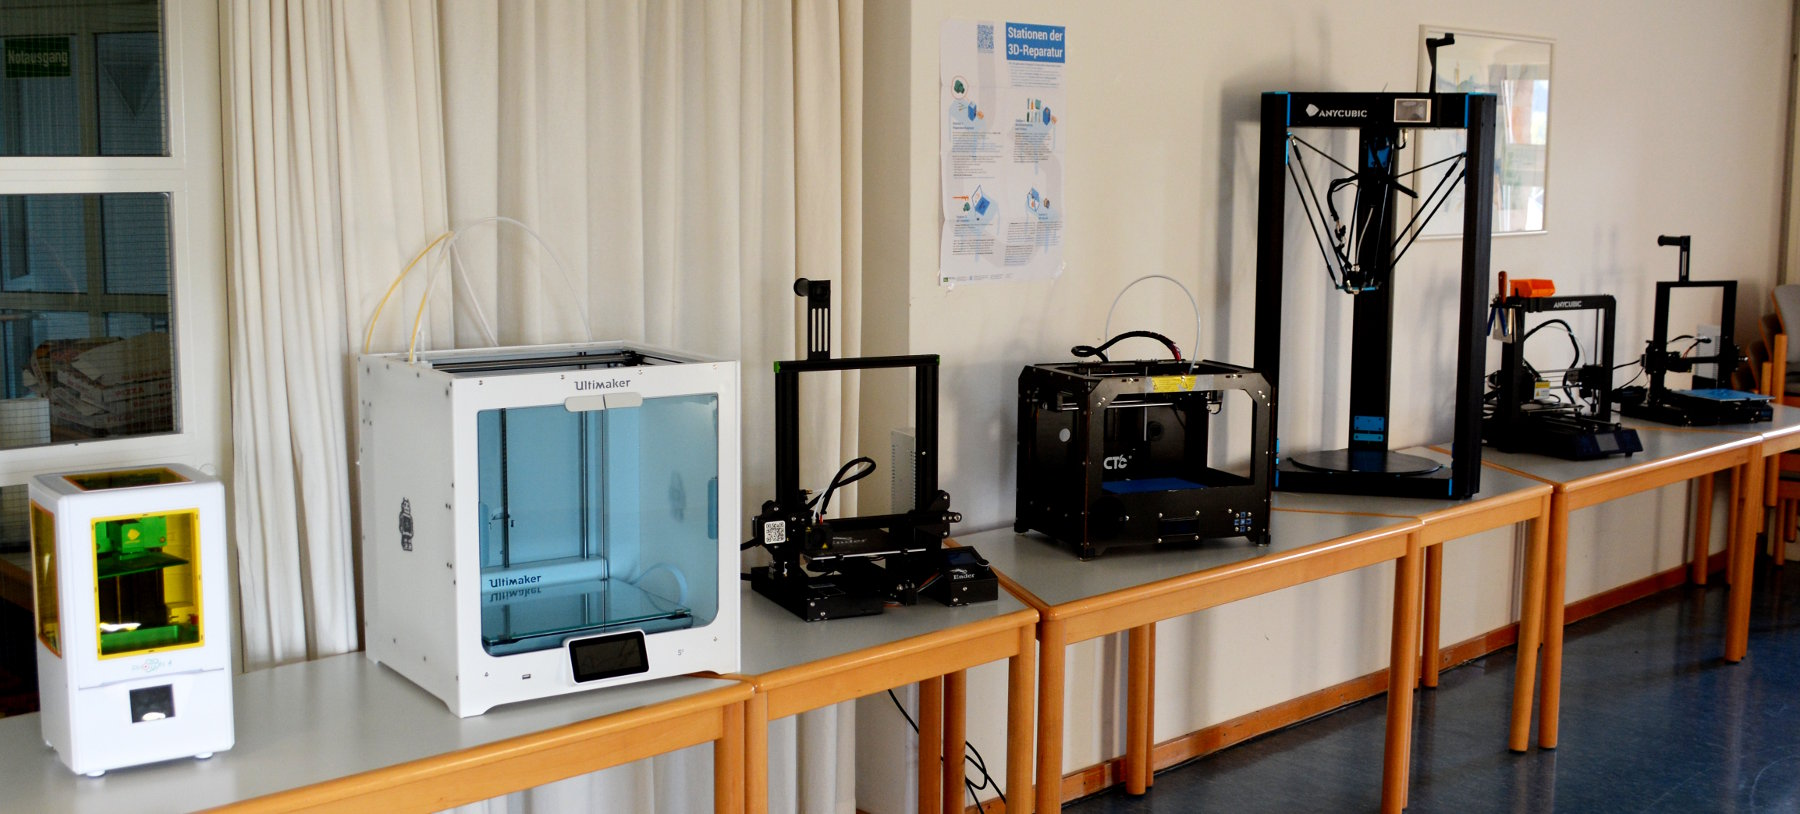 3D-Drucker Repair-Cafe Hilpoltstein